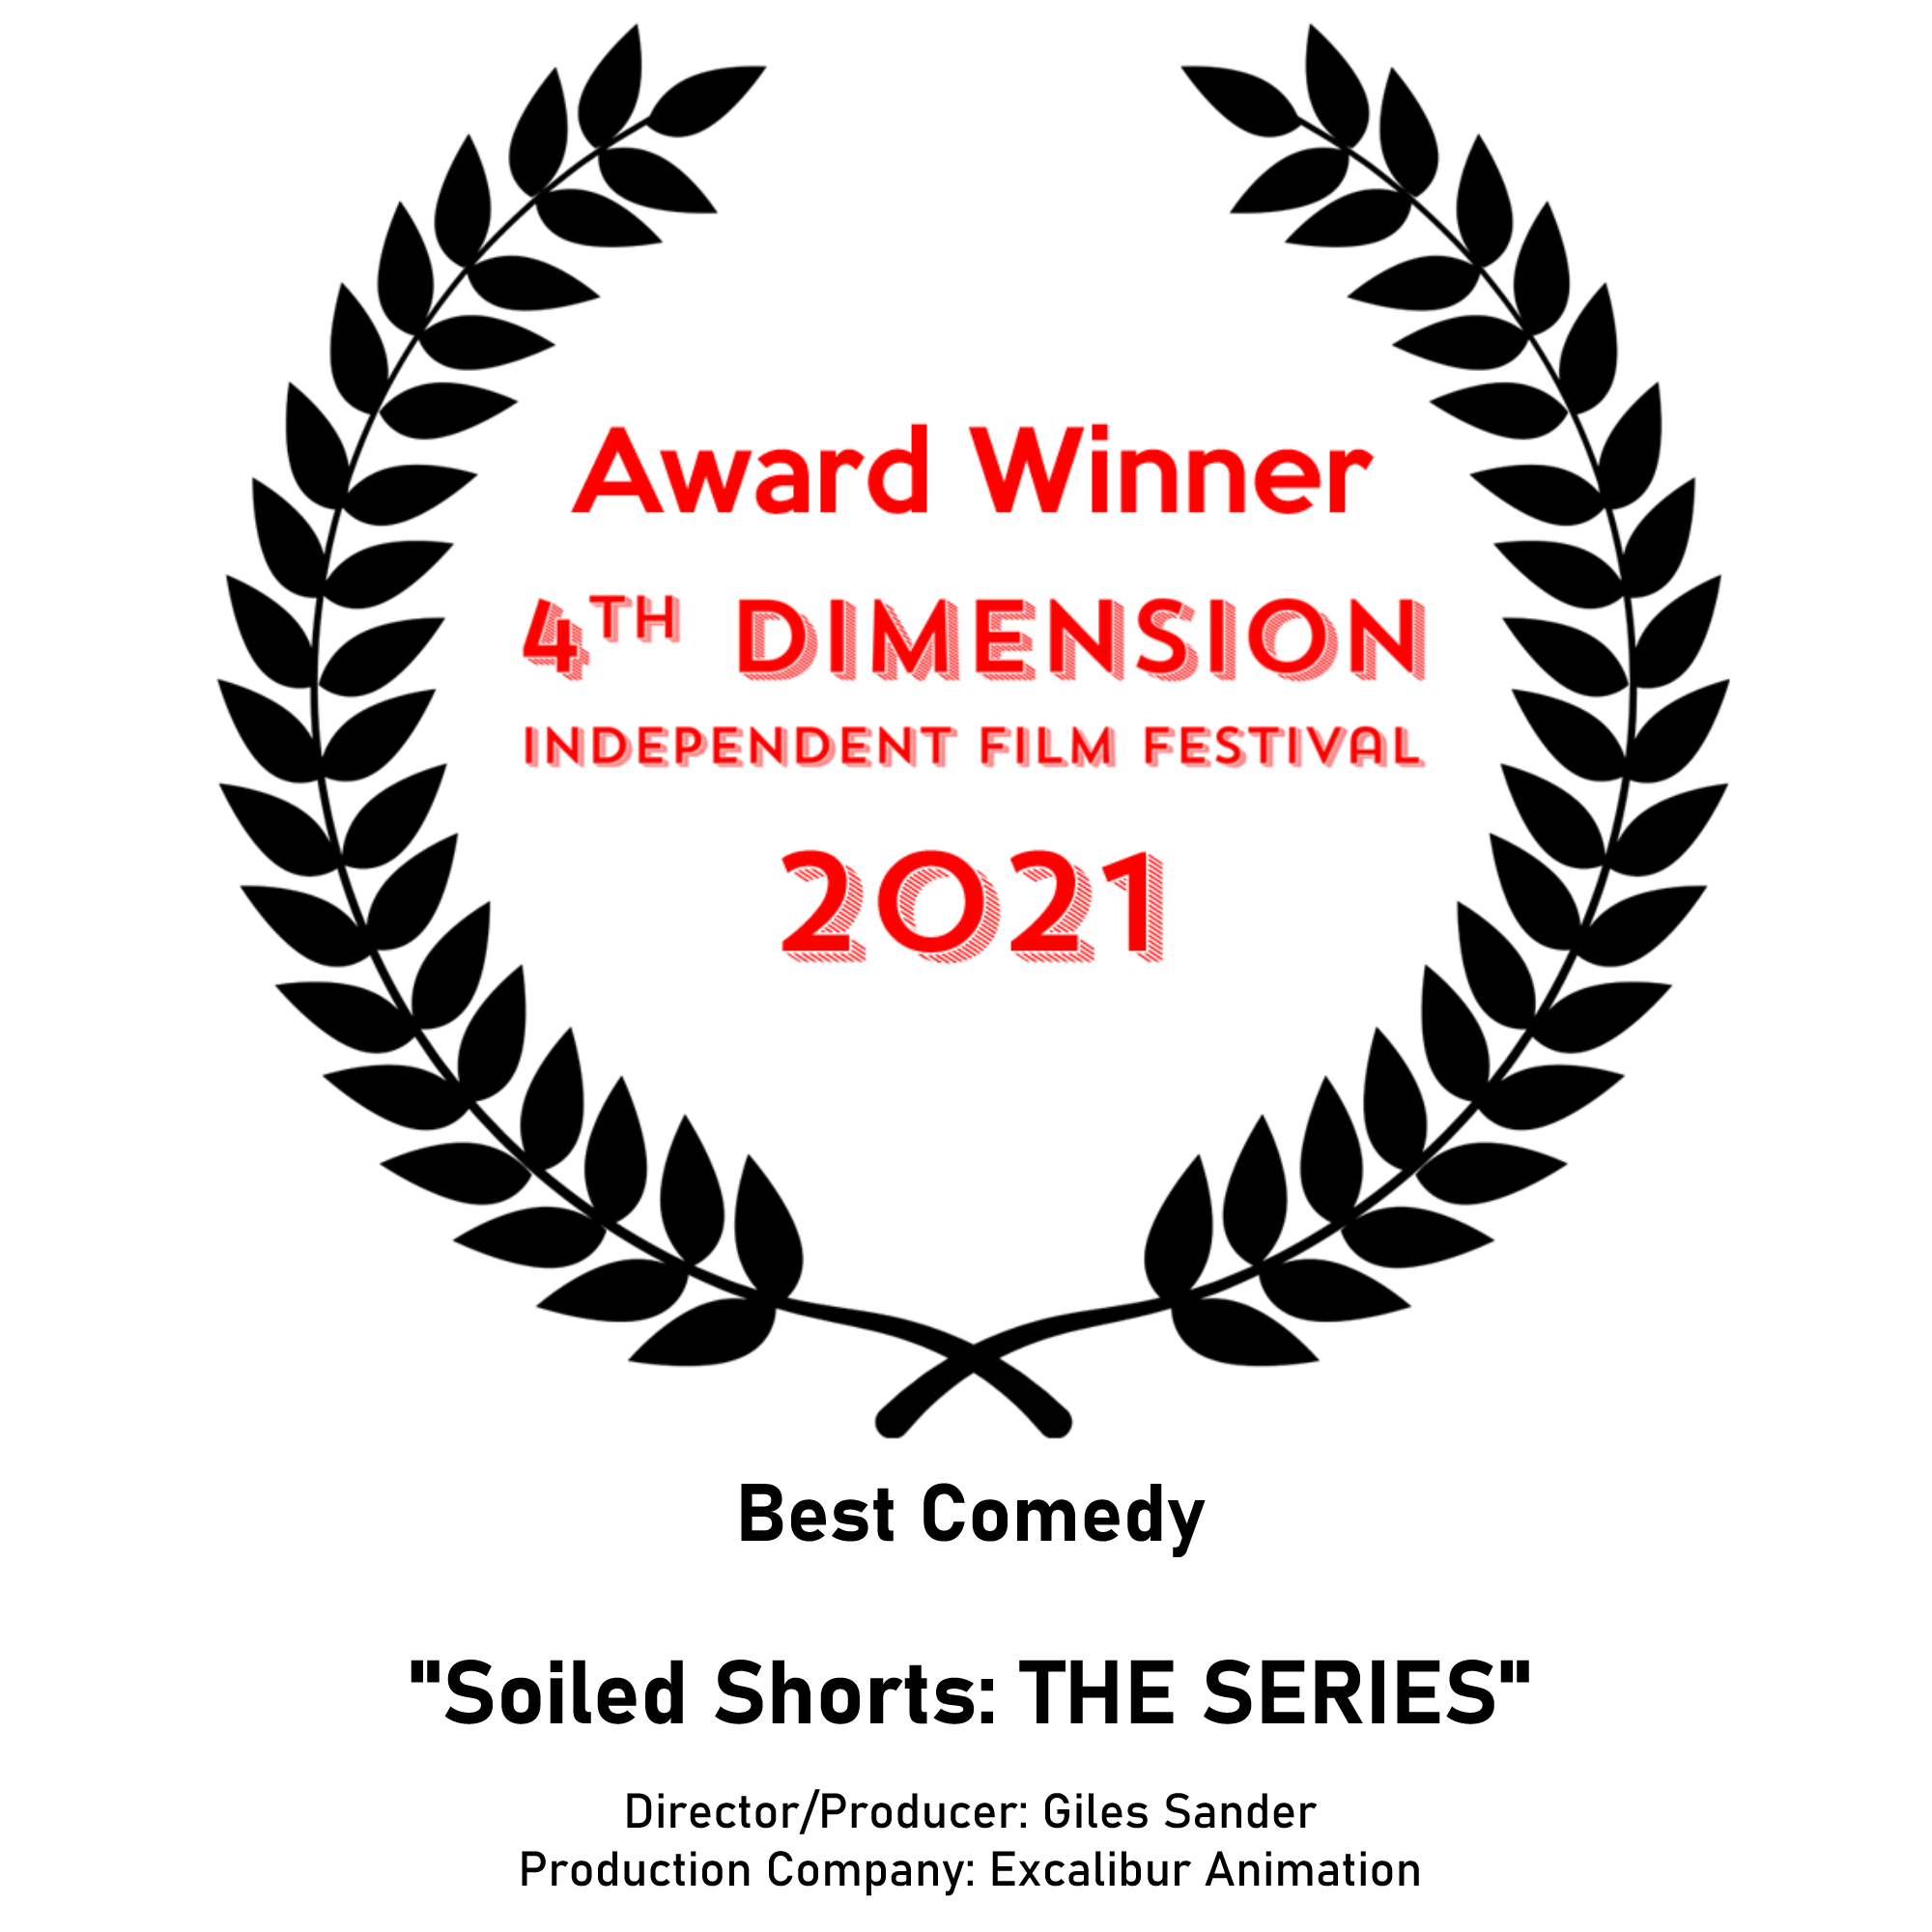 4th Dimension Independent Film Festival 2021